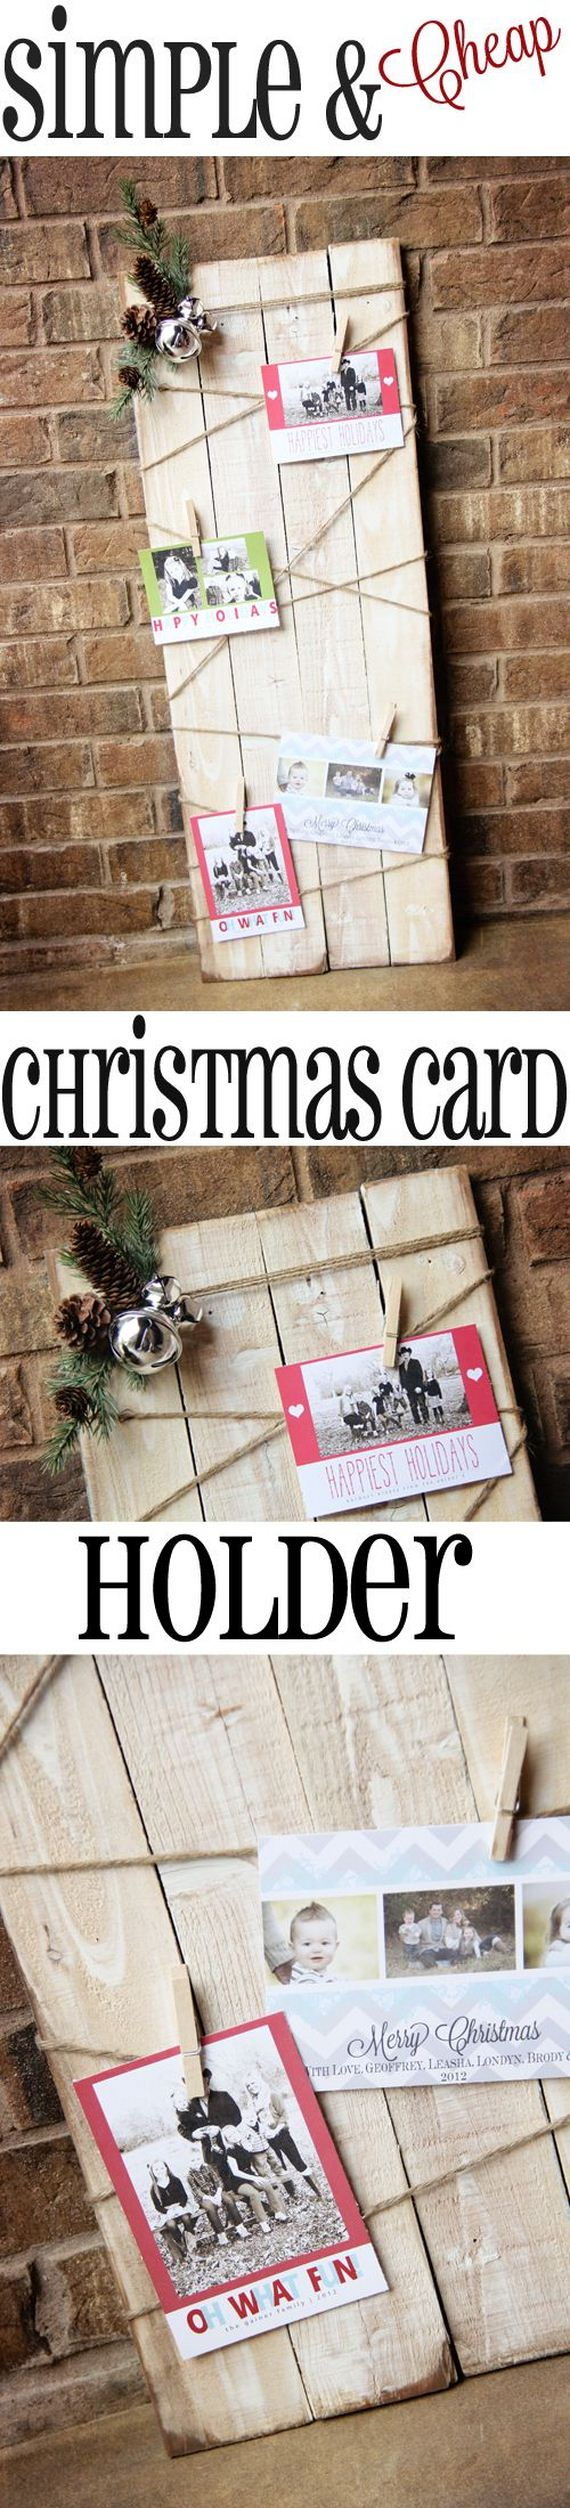 13-photos-cards-christmas